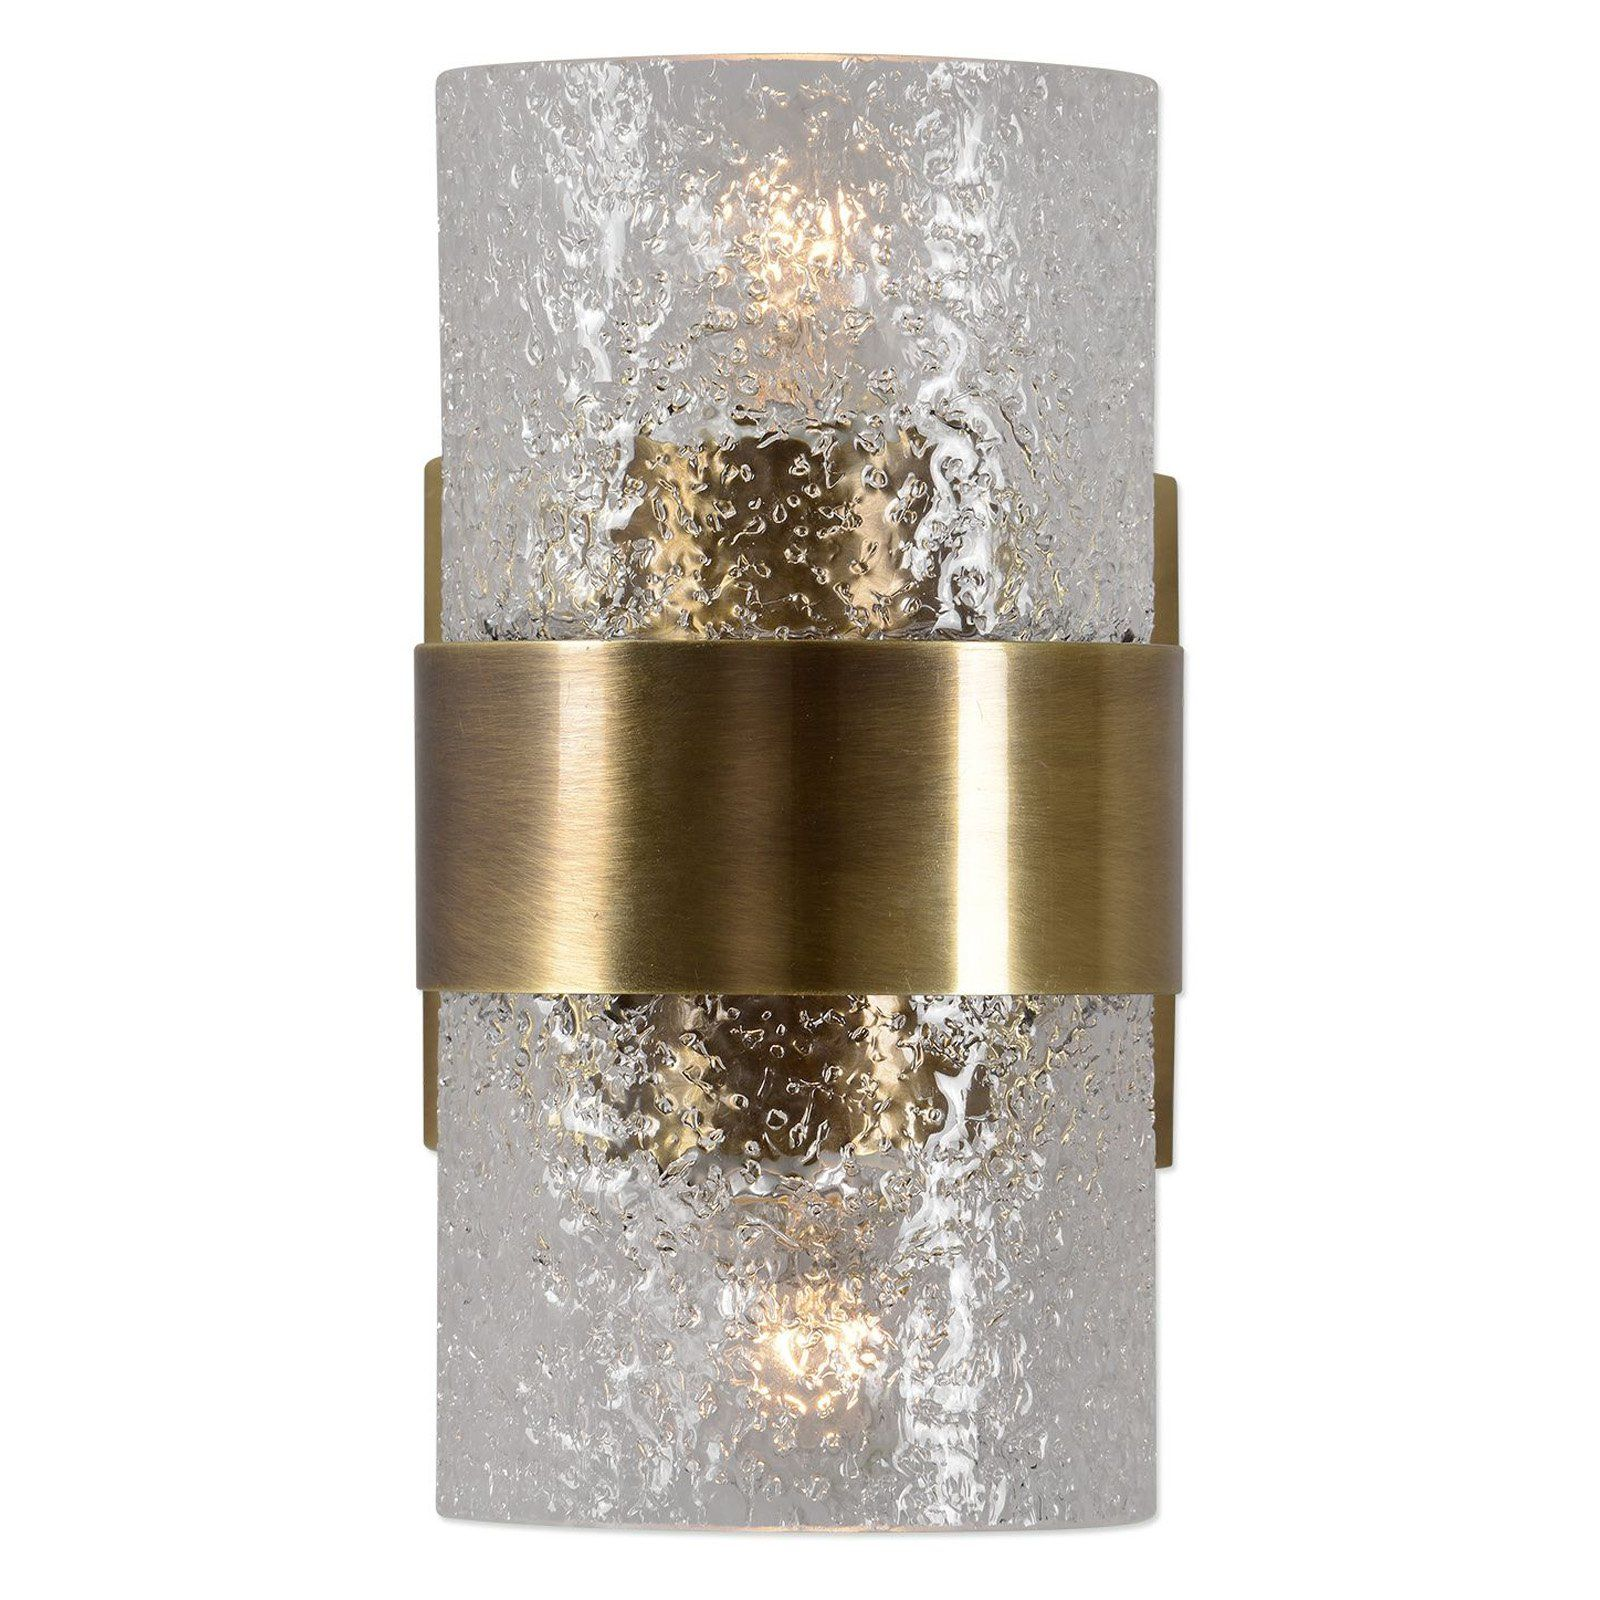 Uttermost marinot sconce products pinterest products